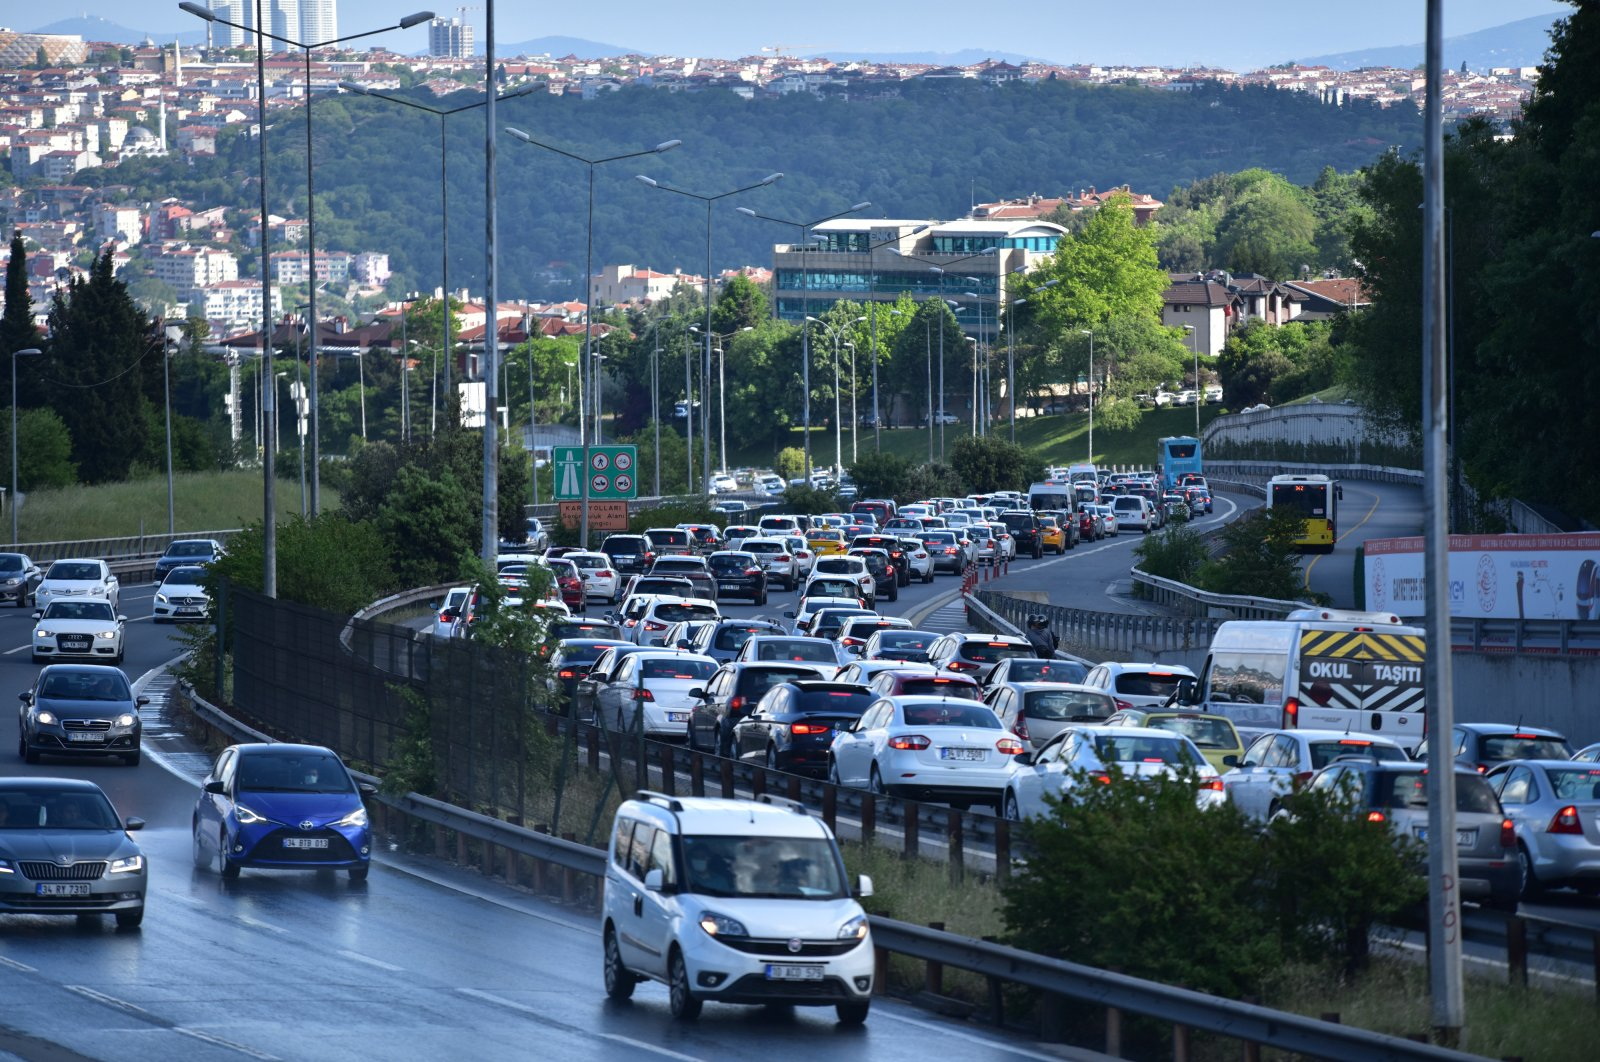 Heavy traffic is seen in Istanbul, Turkey, May 27, 2020. Emissions from vehicles are a major factor in air pollution levels. (DHA Photo)